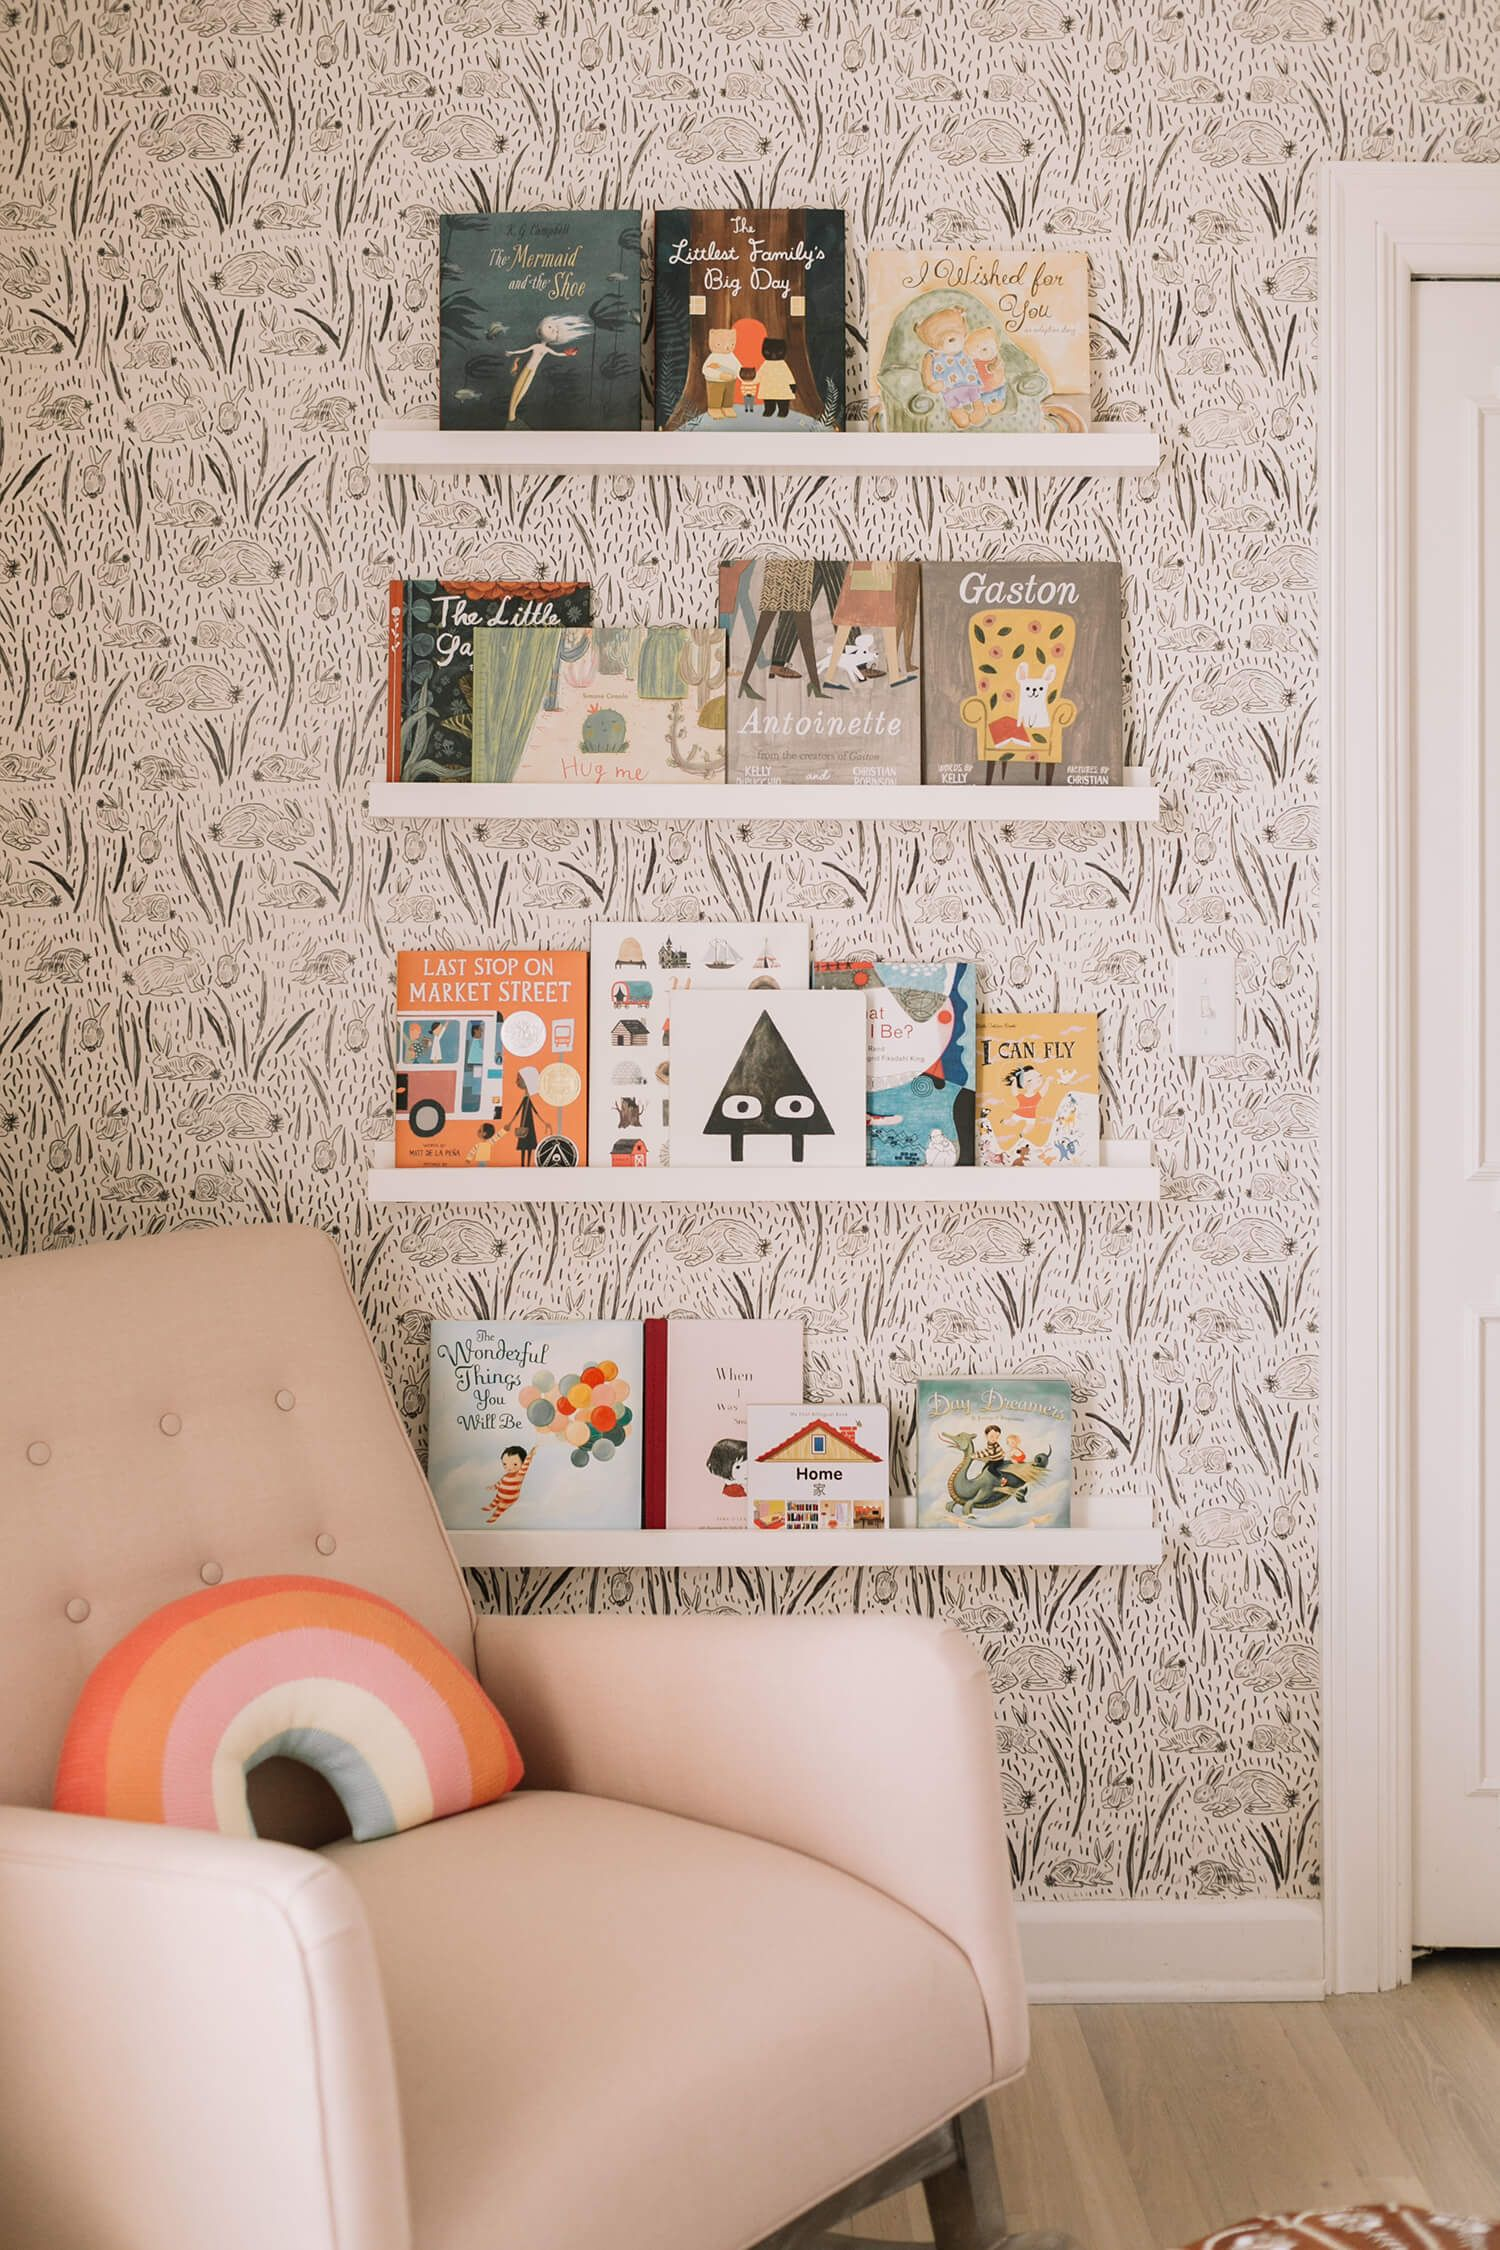 Cozy kids reading corner for a playroom or bedroom. Love the patterned  wallpaper and the